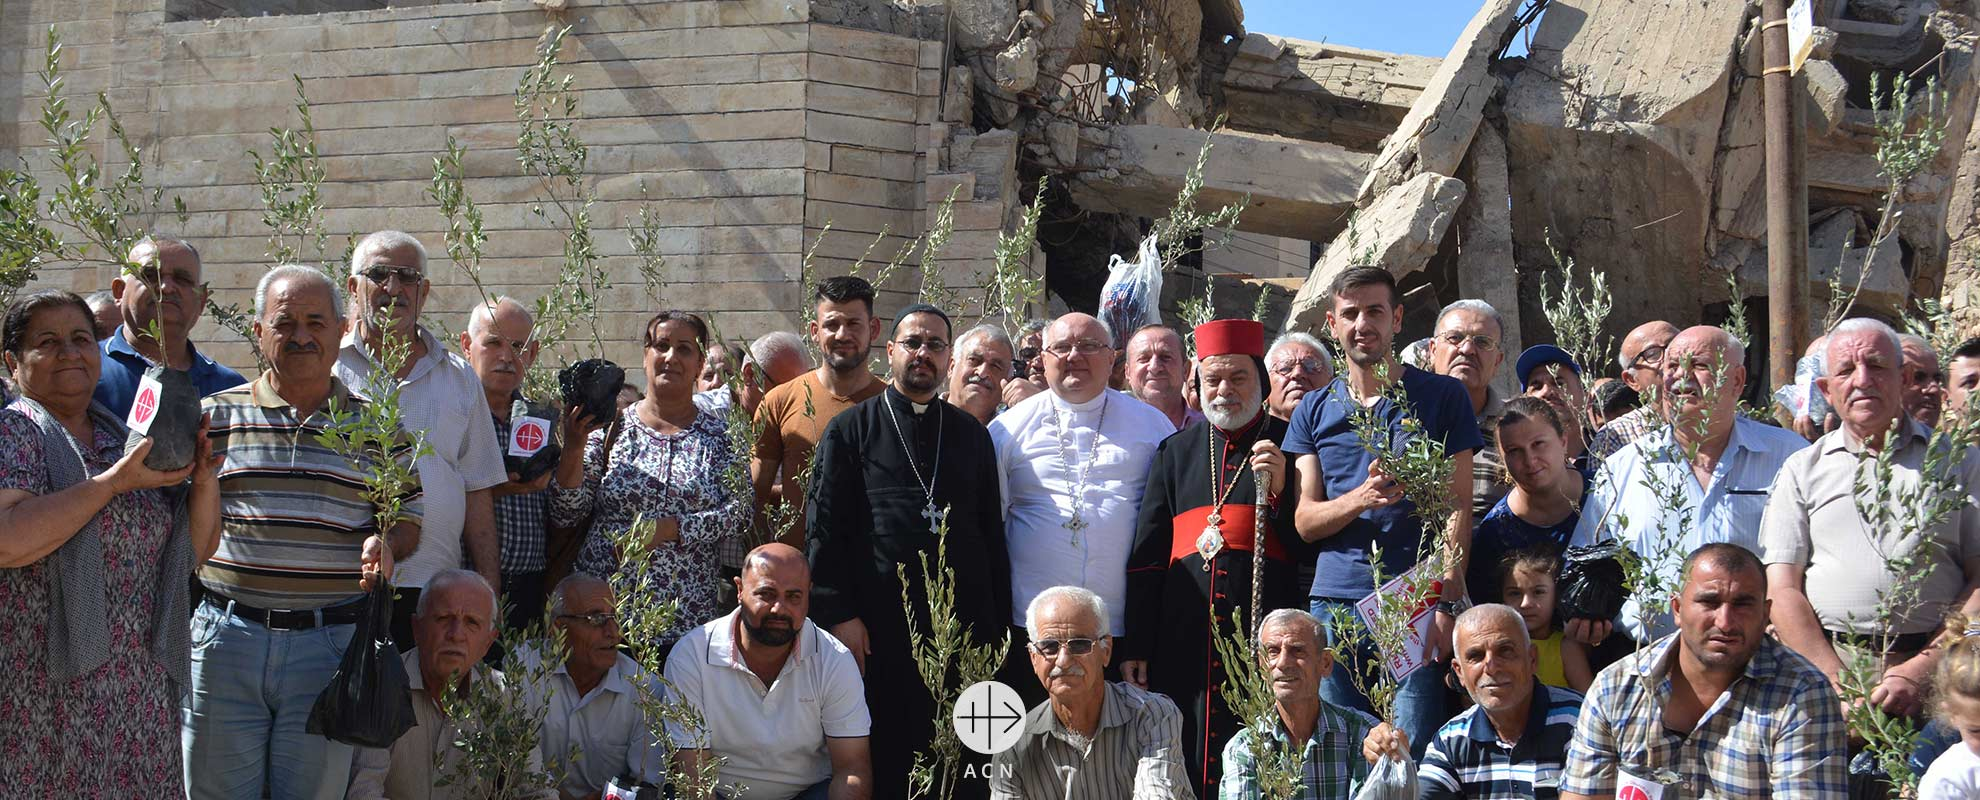 Celebrations mark return of Iraqi Christians to Nineveh